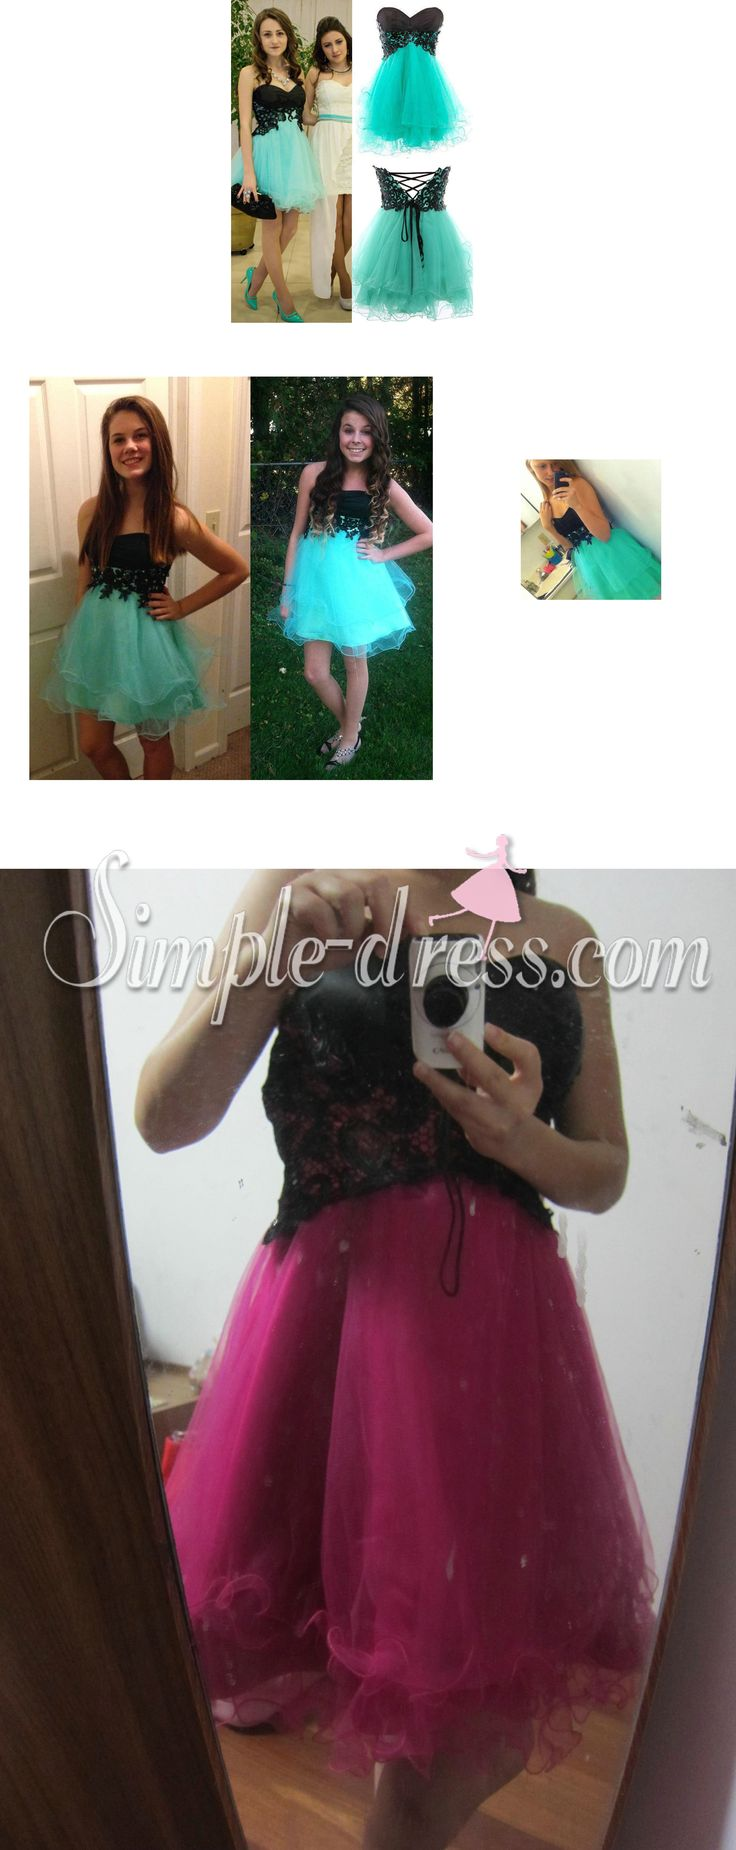 #homecoming dresses #2015 homecoming dresses #cheap homecoming dresses under 100 #short homecoming dresses #cocktail dresses #sexy dress #party dresses